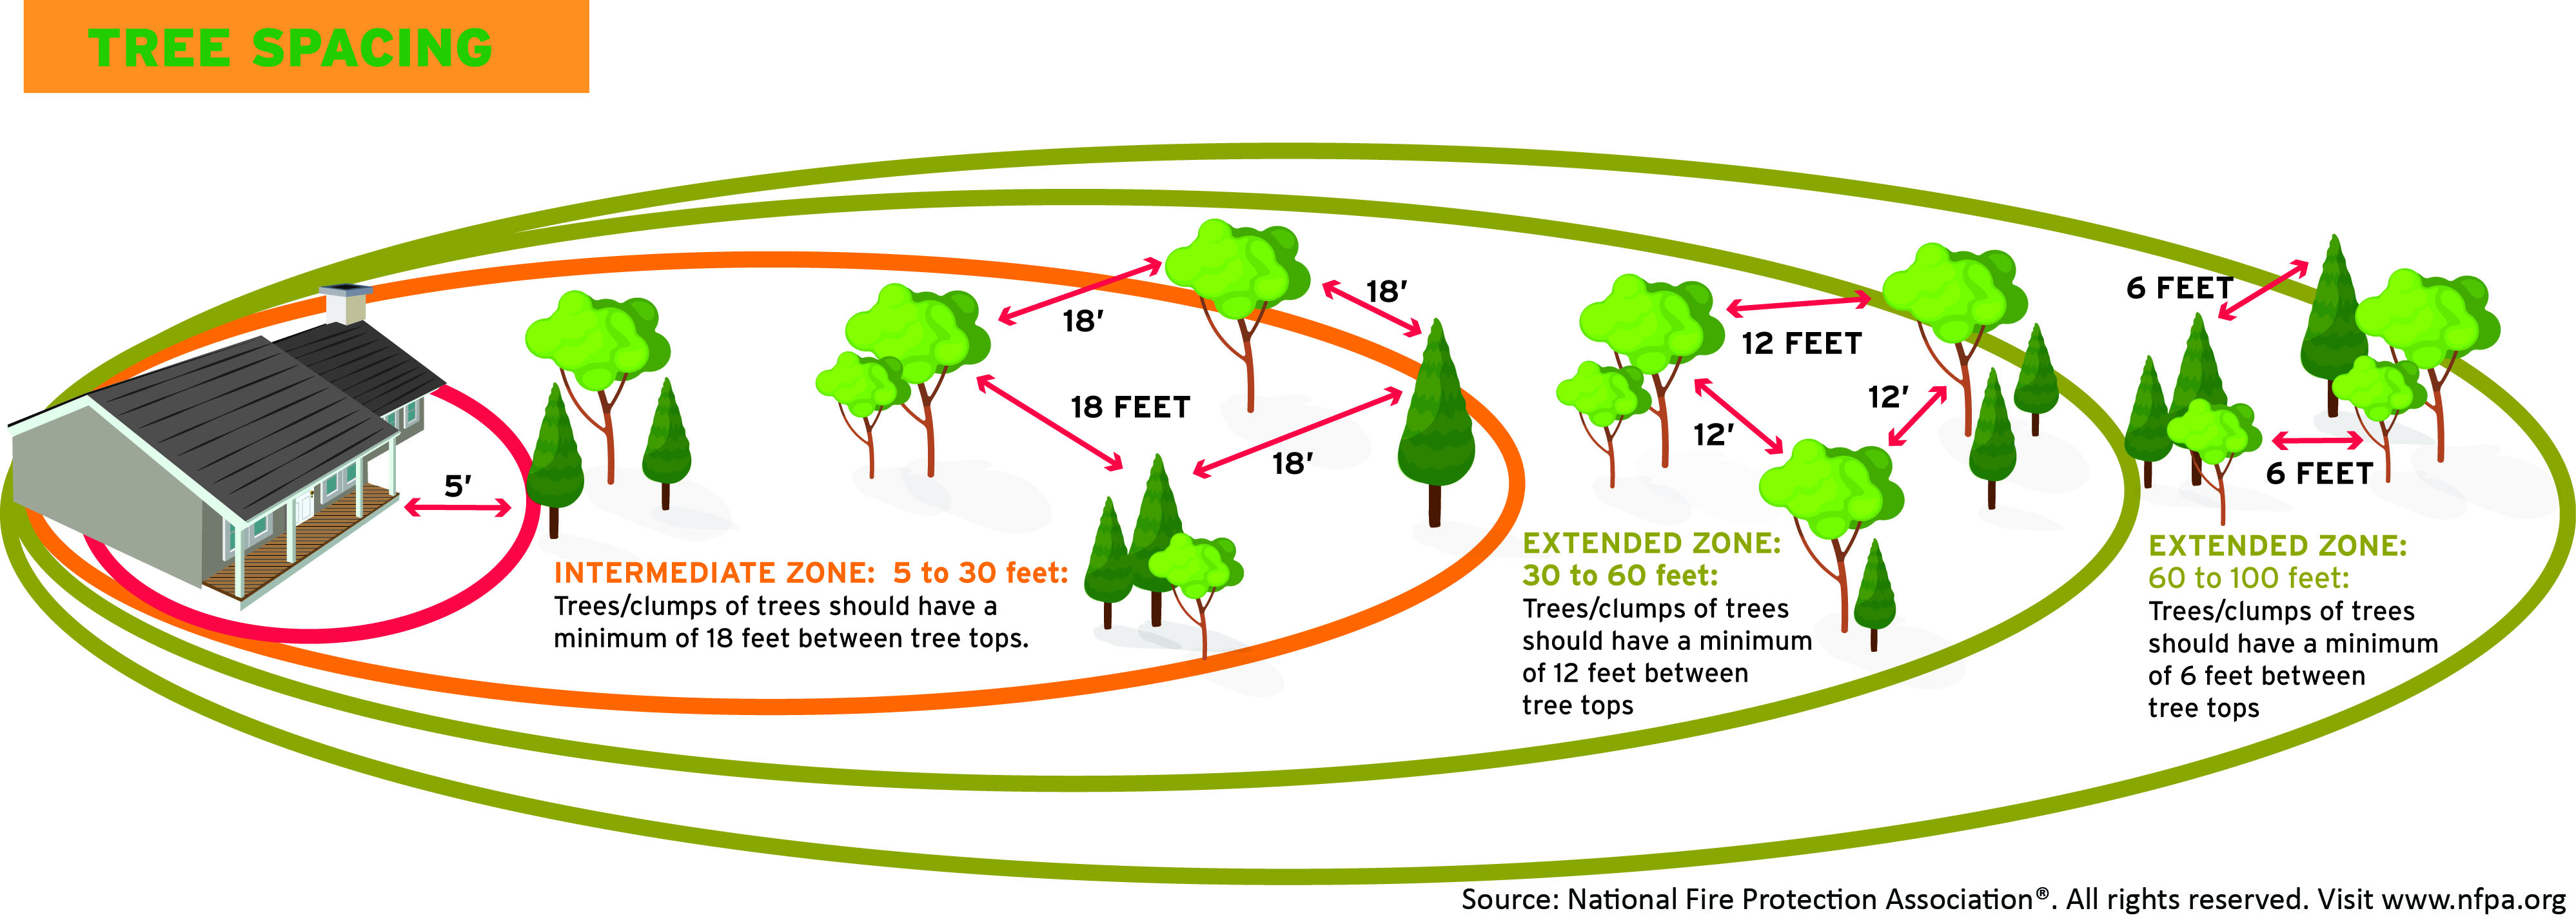 Tree Spacing Graphic for defensible space